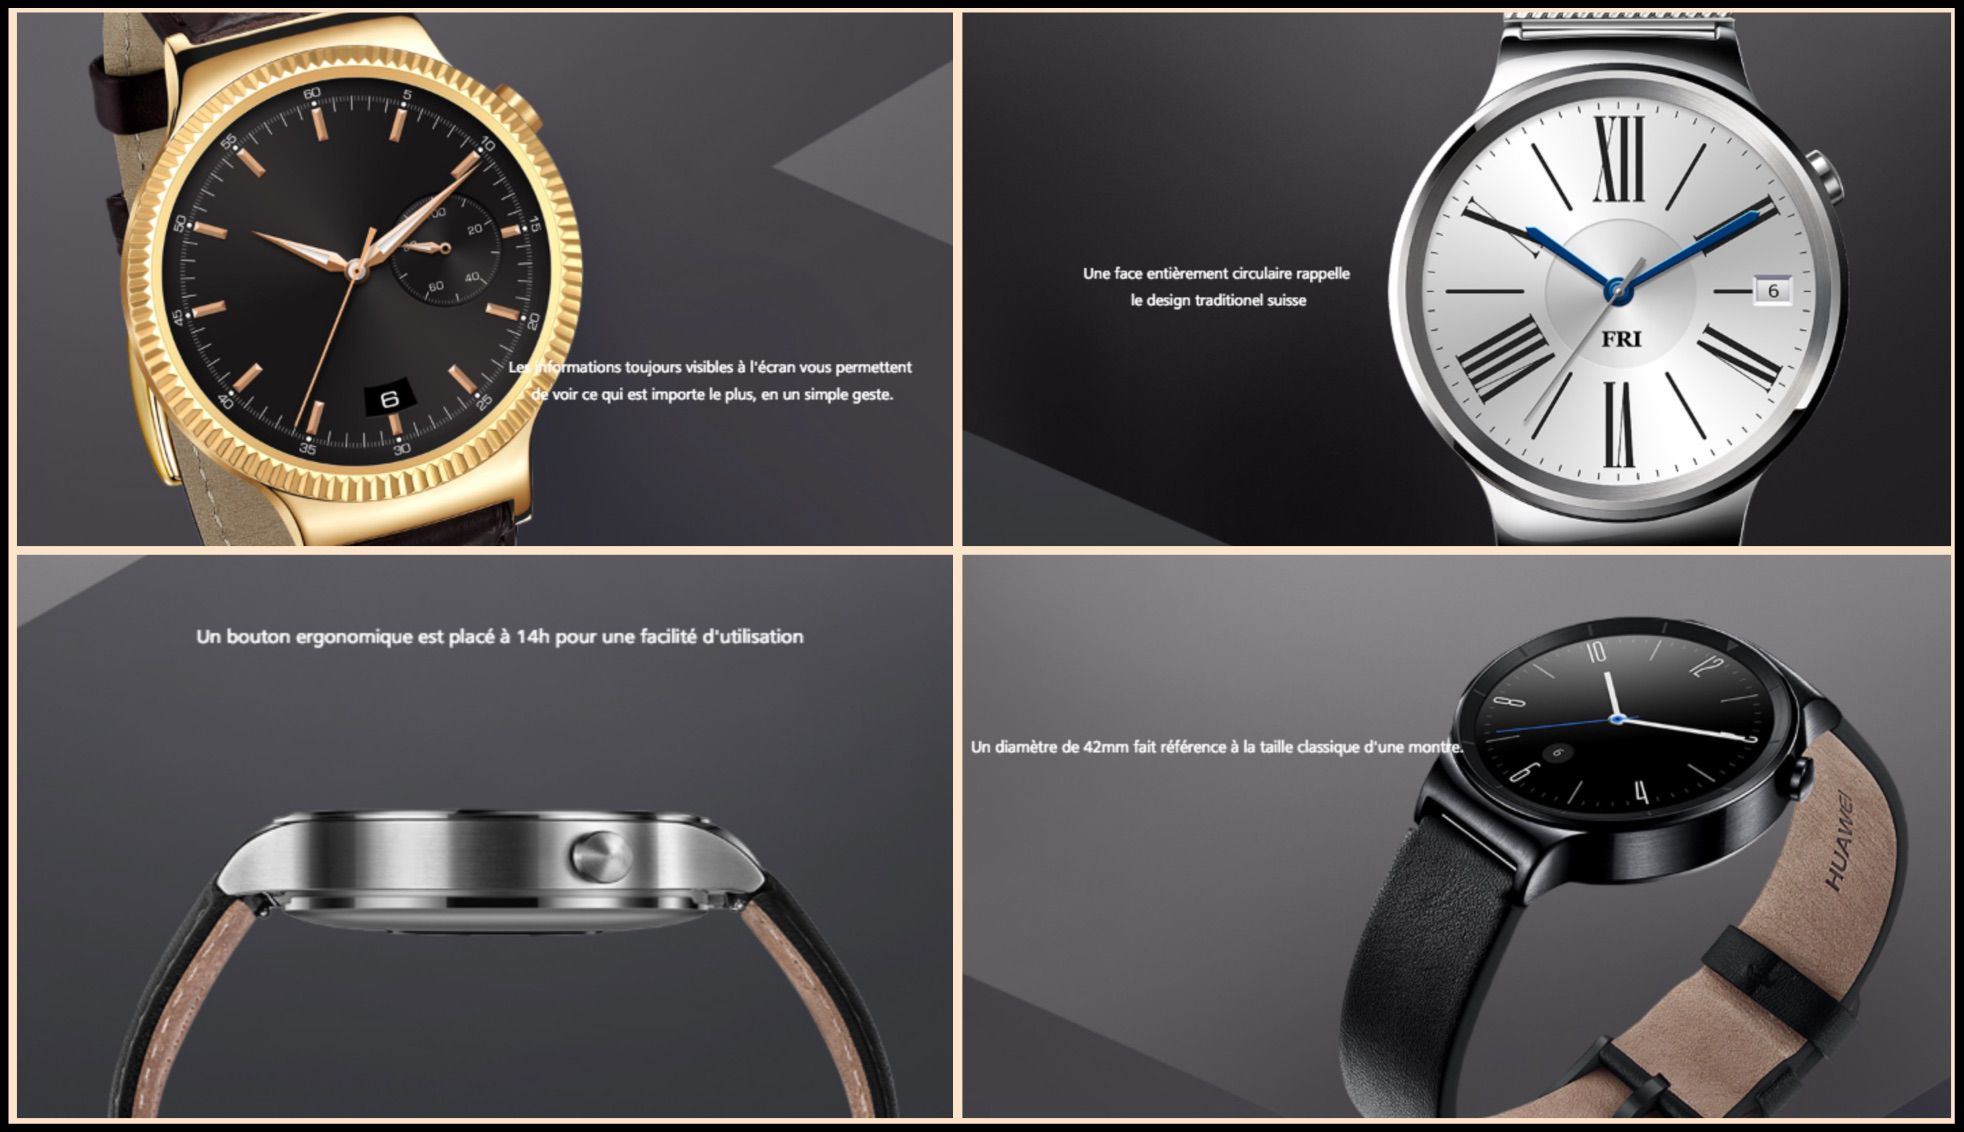 montre connectée HUAWEI Watch montre chinoise